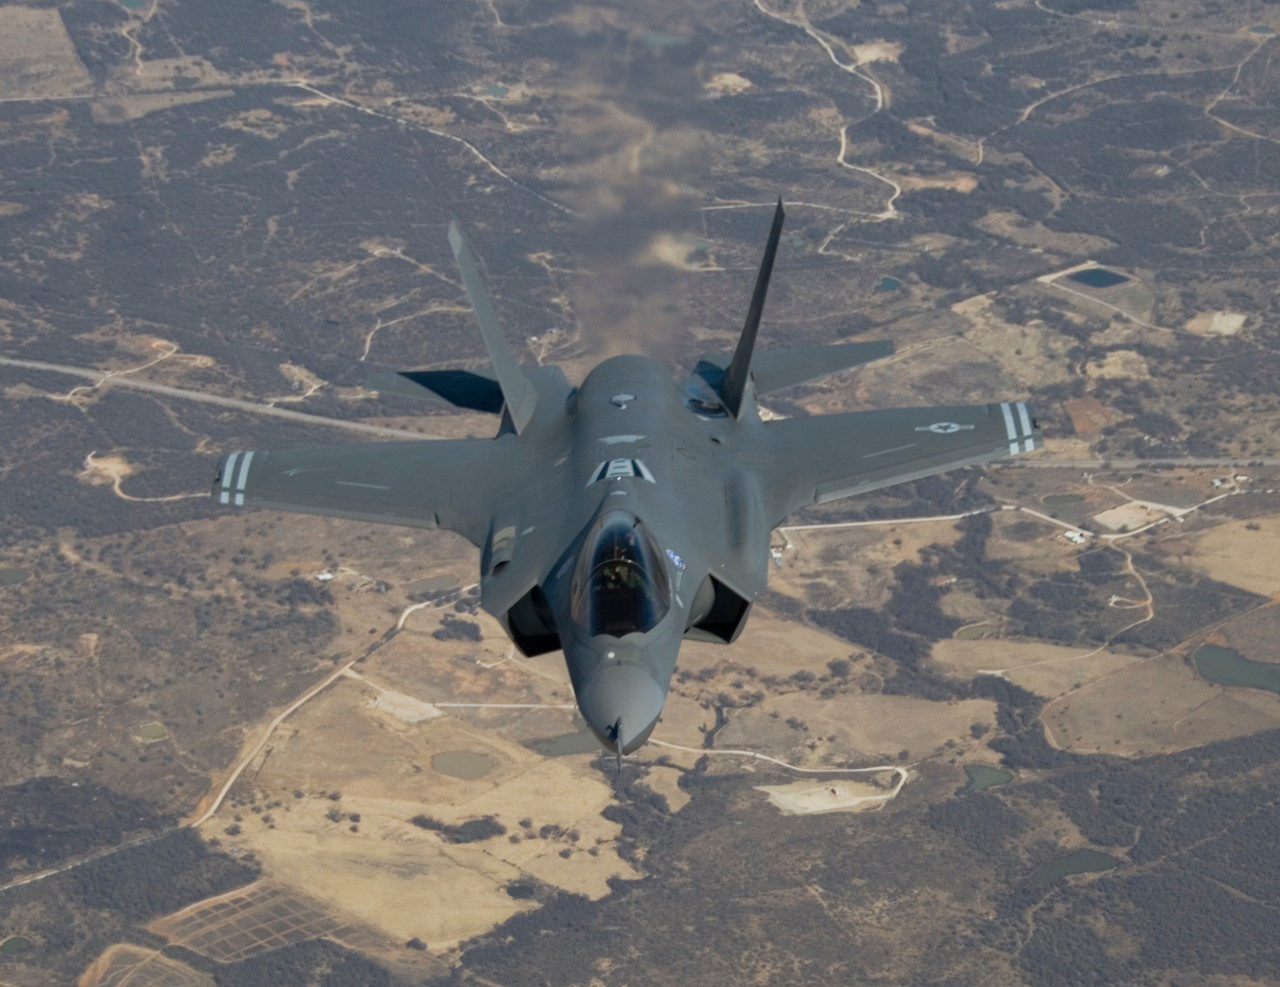 "What happens to Canada if the U.S. scraps the F-35?The Lockheed Martin F-35 fighter-bomber was supposed to serve as the backbone of the U.S. Air Force while bringing affordable radar-evading stealth technology to medium-sized U.S. allies including Australia, the Netherlands and Canada. Now senior Republicans and Democrats on the Senate Armed Services Committee are openly musing about scrapping the most expensive defence program in history. The F-35, also known as the Joint Strike Fighter (JSF), is 13 to 30 months late meeting revised deadlines. The price per unit has doubled. Last week the Pentagon issued what Senator John McCain called a ""jaw-dropping"" estimate of US$1-trillion to keep a future 2,400-plane U.S. fleet of F-35s flying for five decades. Canada has been counting on the F-35 to defend its airspace. The Post's Adam McDowell looks at what is at stake if this option is taken away."